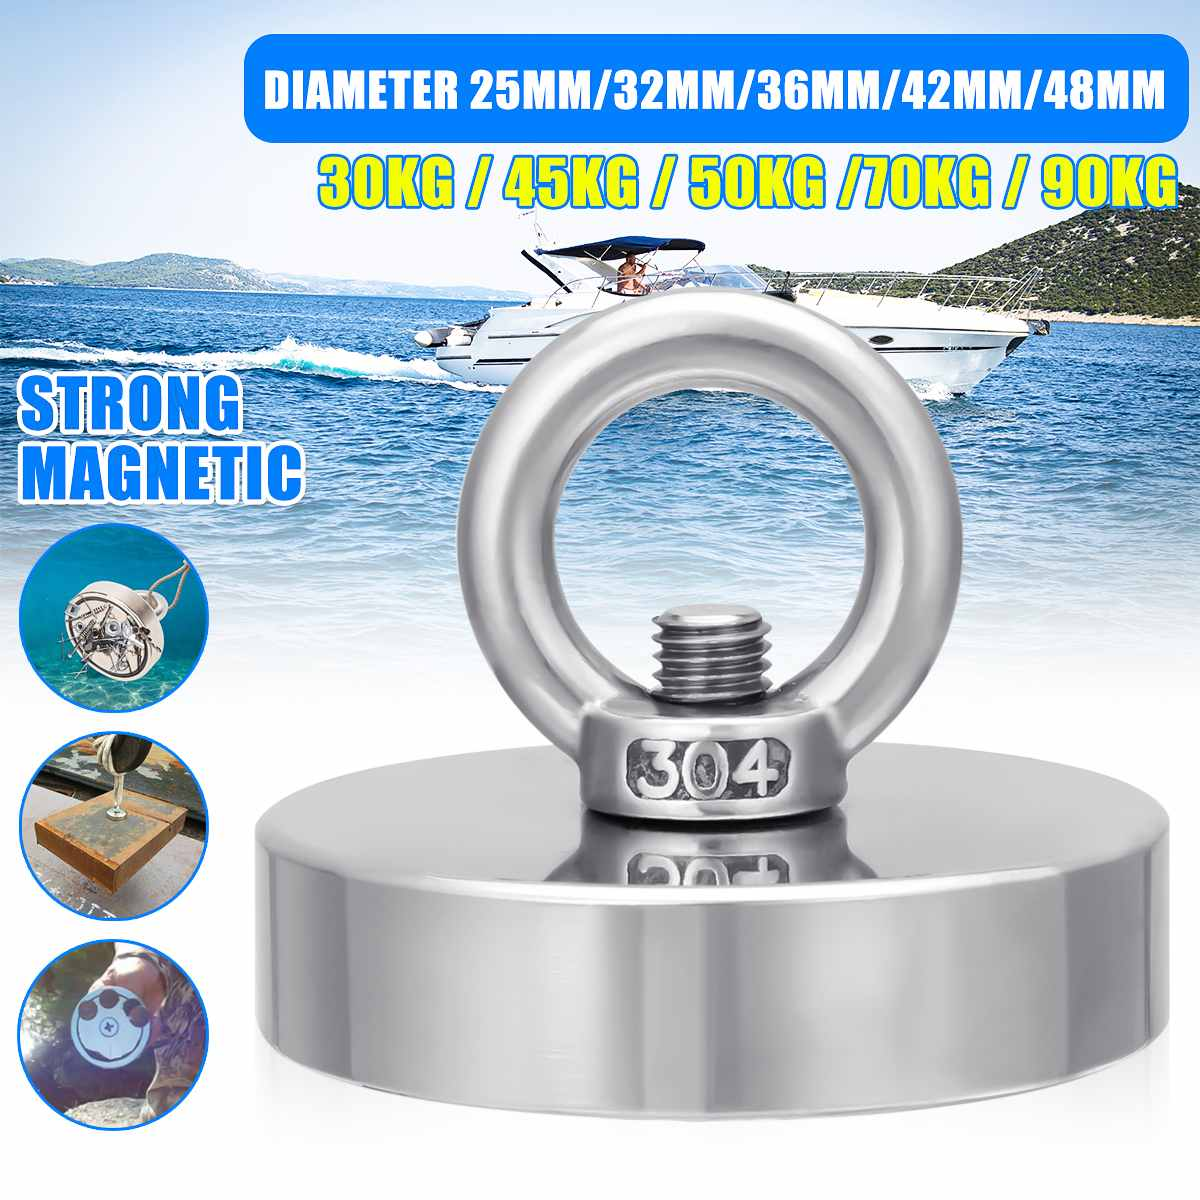 10-48mm Recovery Magnet Hook Strong Sea Fishing Diving Treasure Hunting Magnets